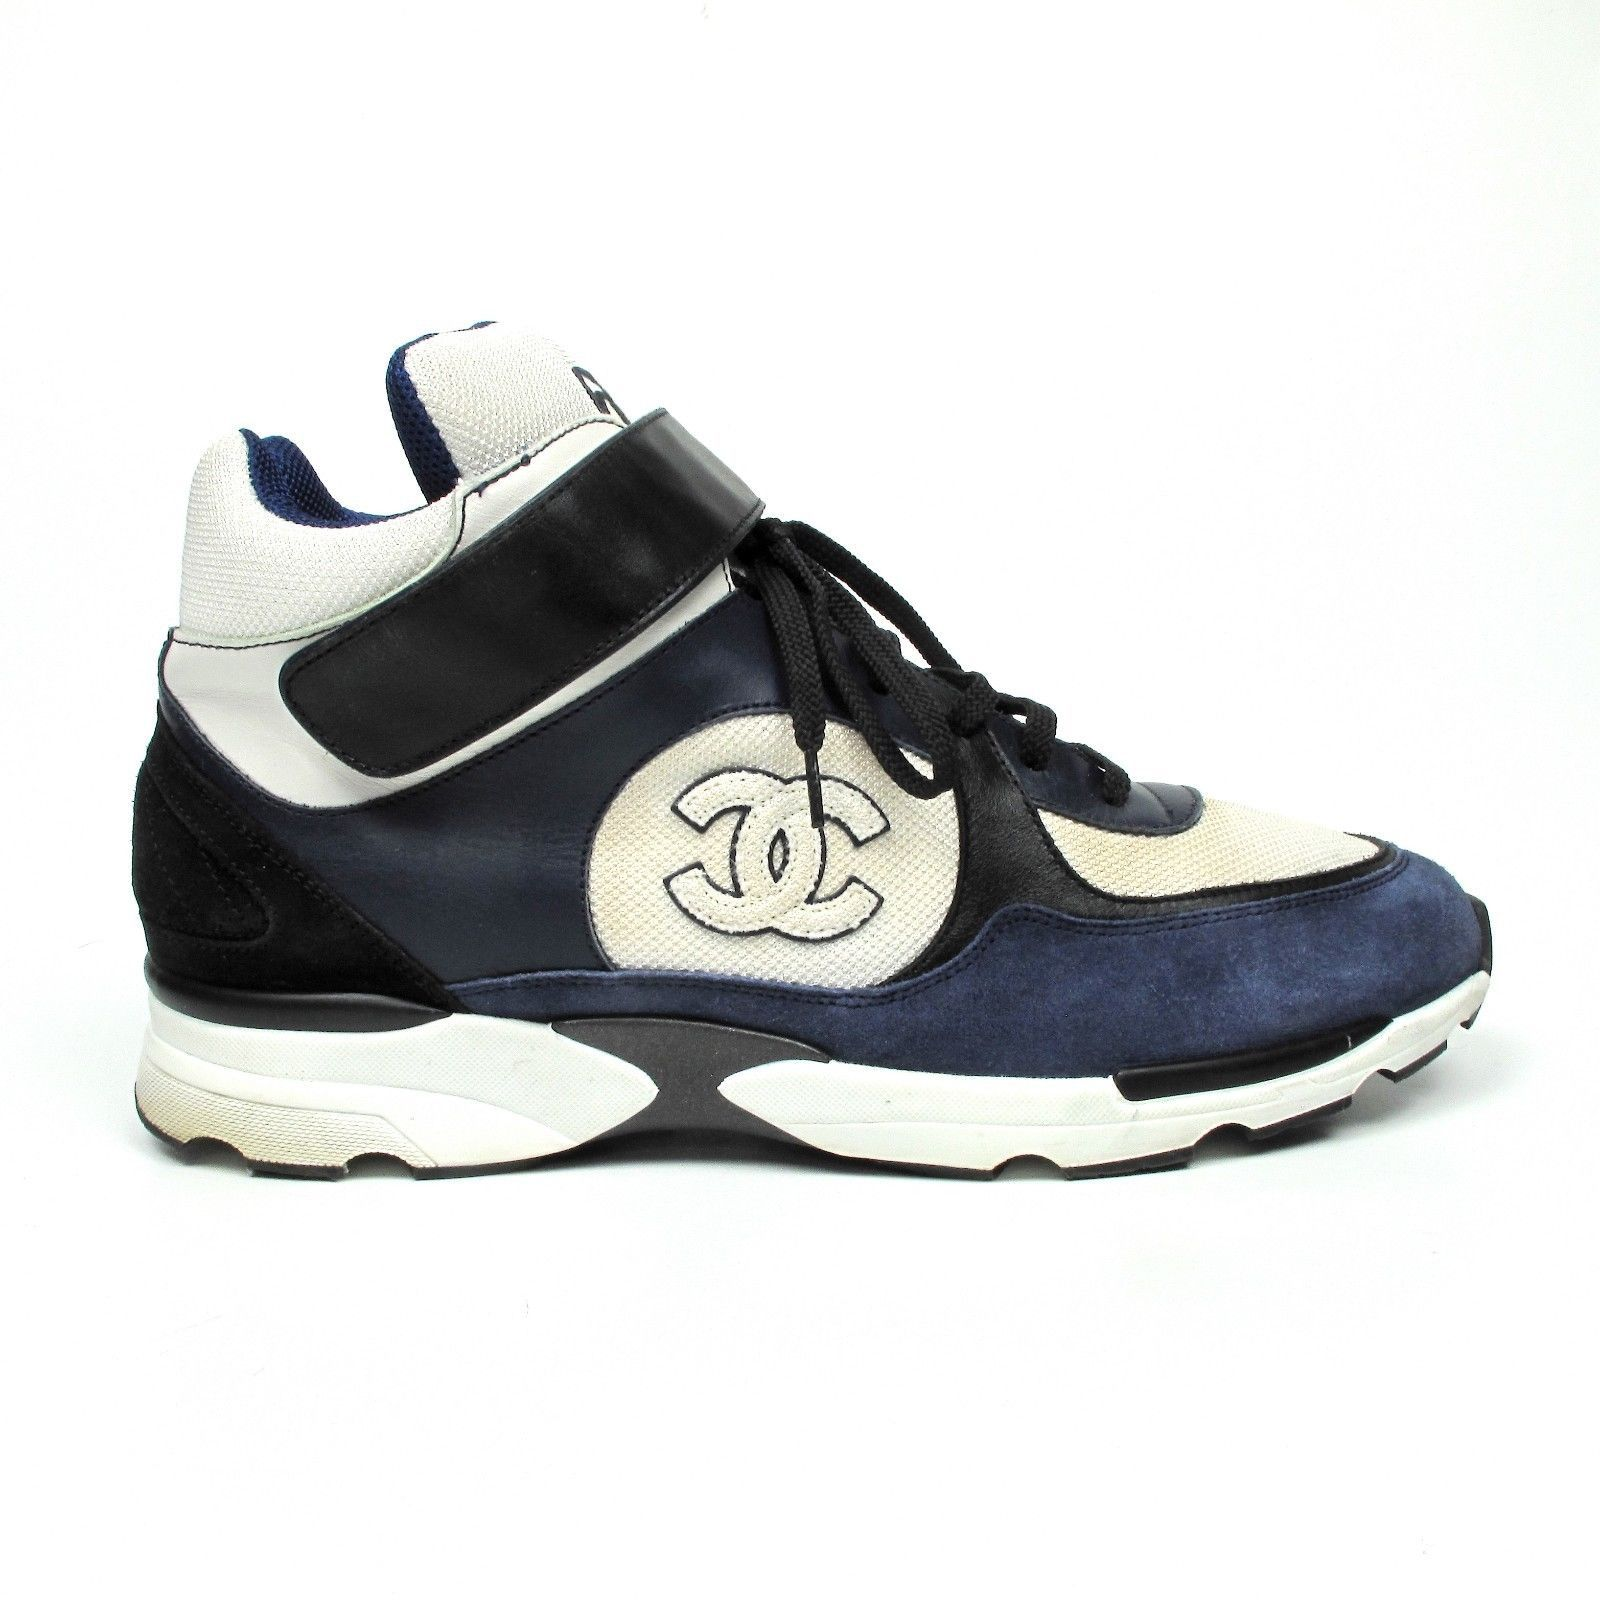 Chanel Mens Sneakers Us 12 45 Trainers Blue White Black High